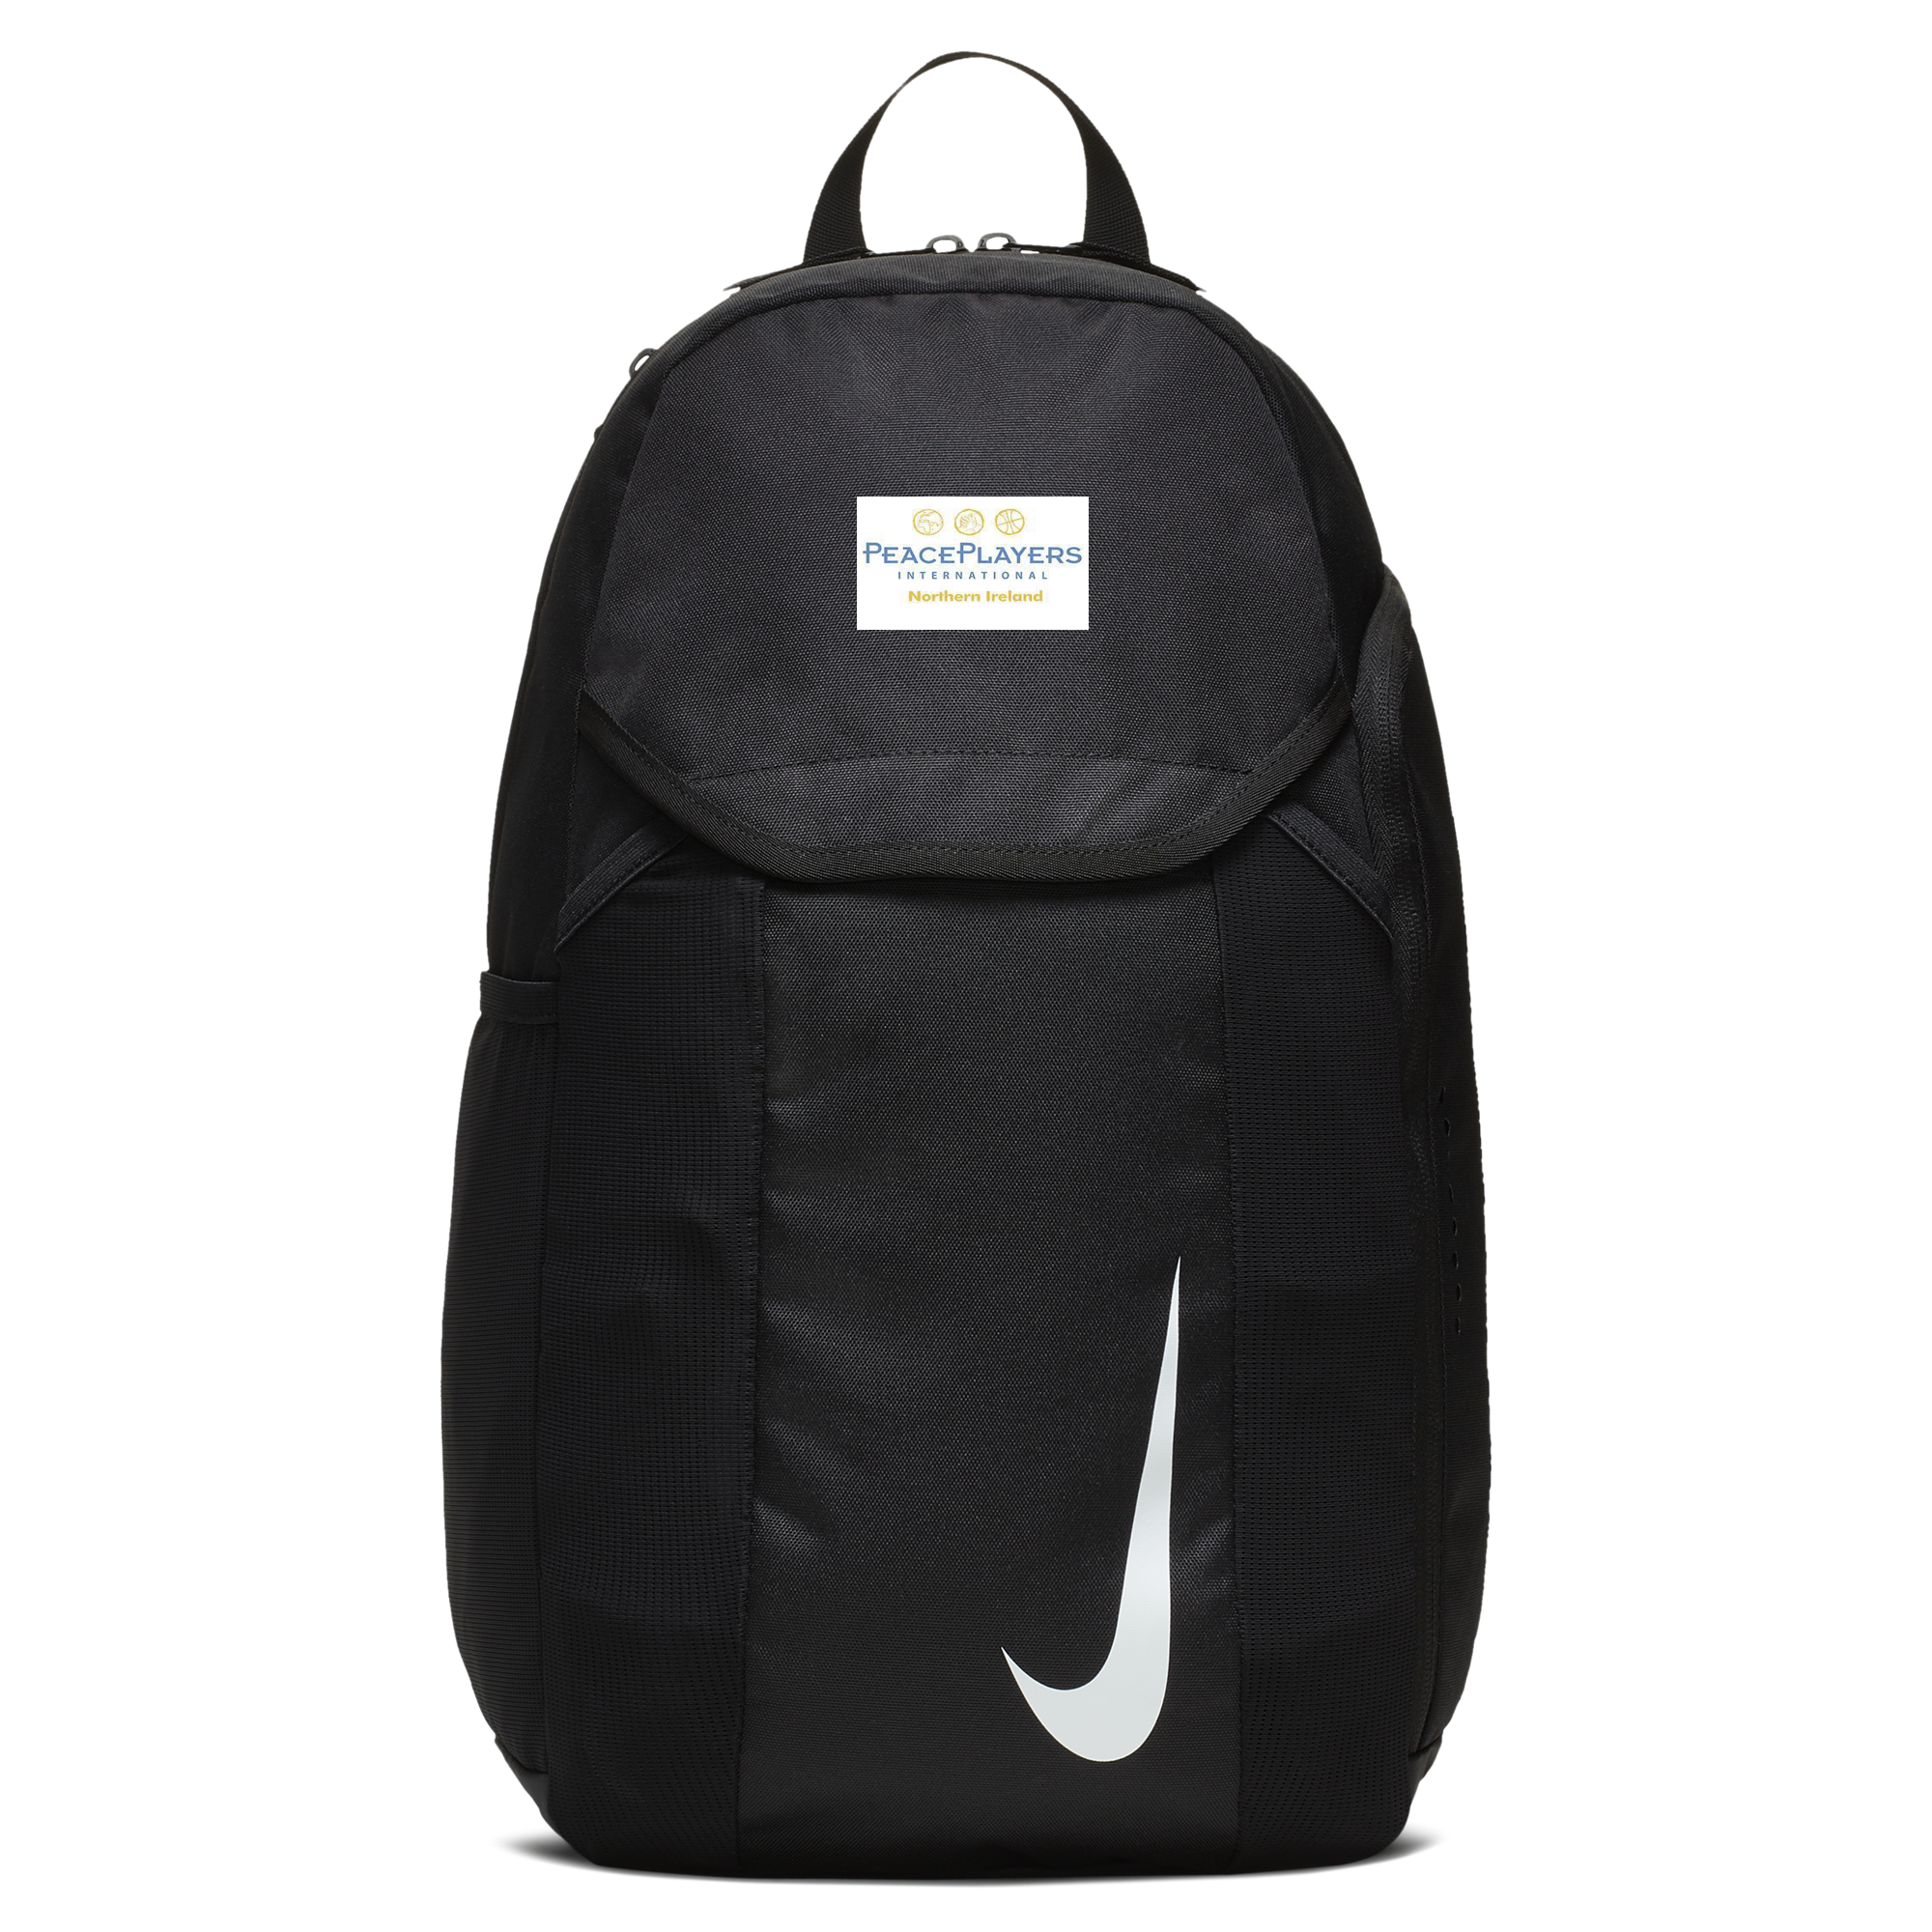 peace players back pack 38086 p